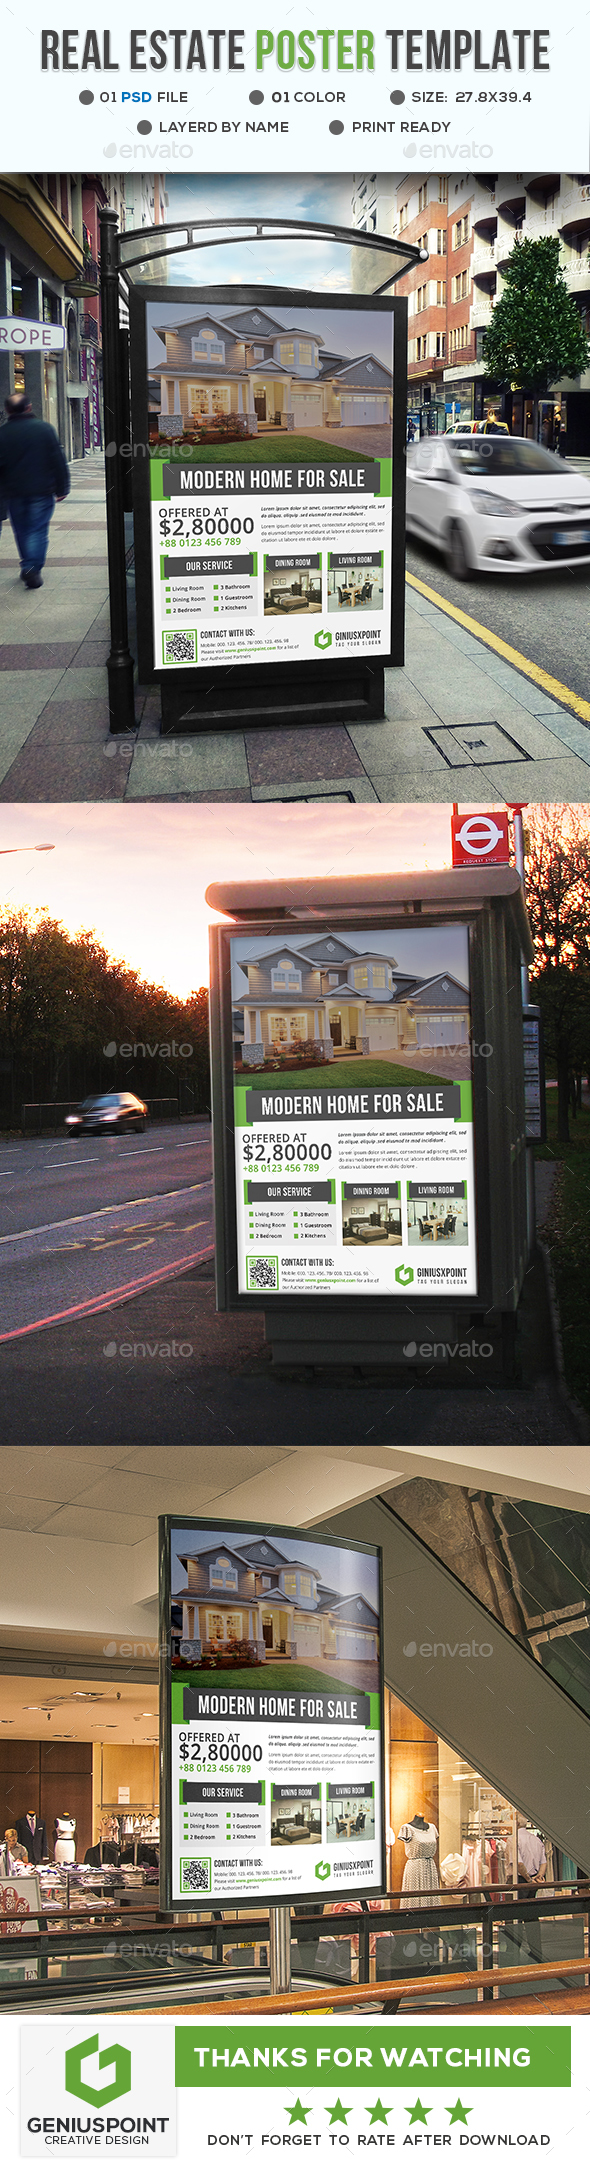 Real Estate Poster Template - Signage Print Templates